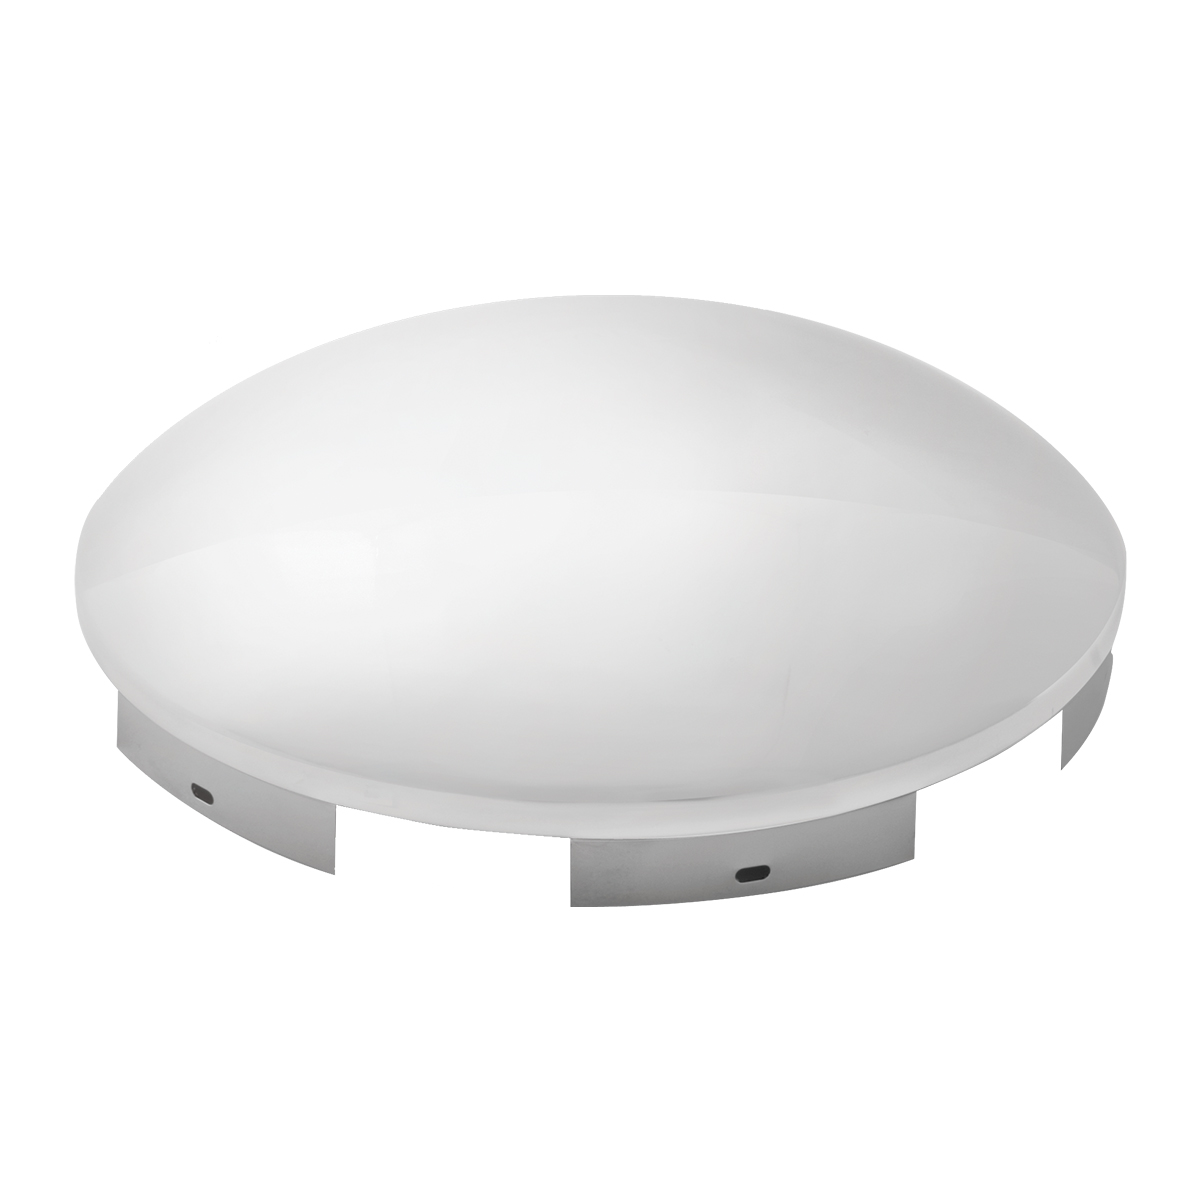 6 Notches GG Grand General 10775 Stainless Steel Universal Front Hubdometer Cap 1 Inches Lip